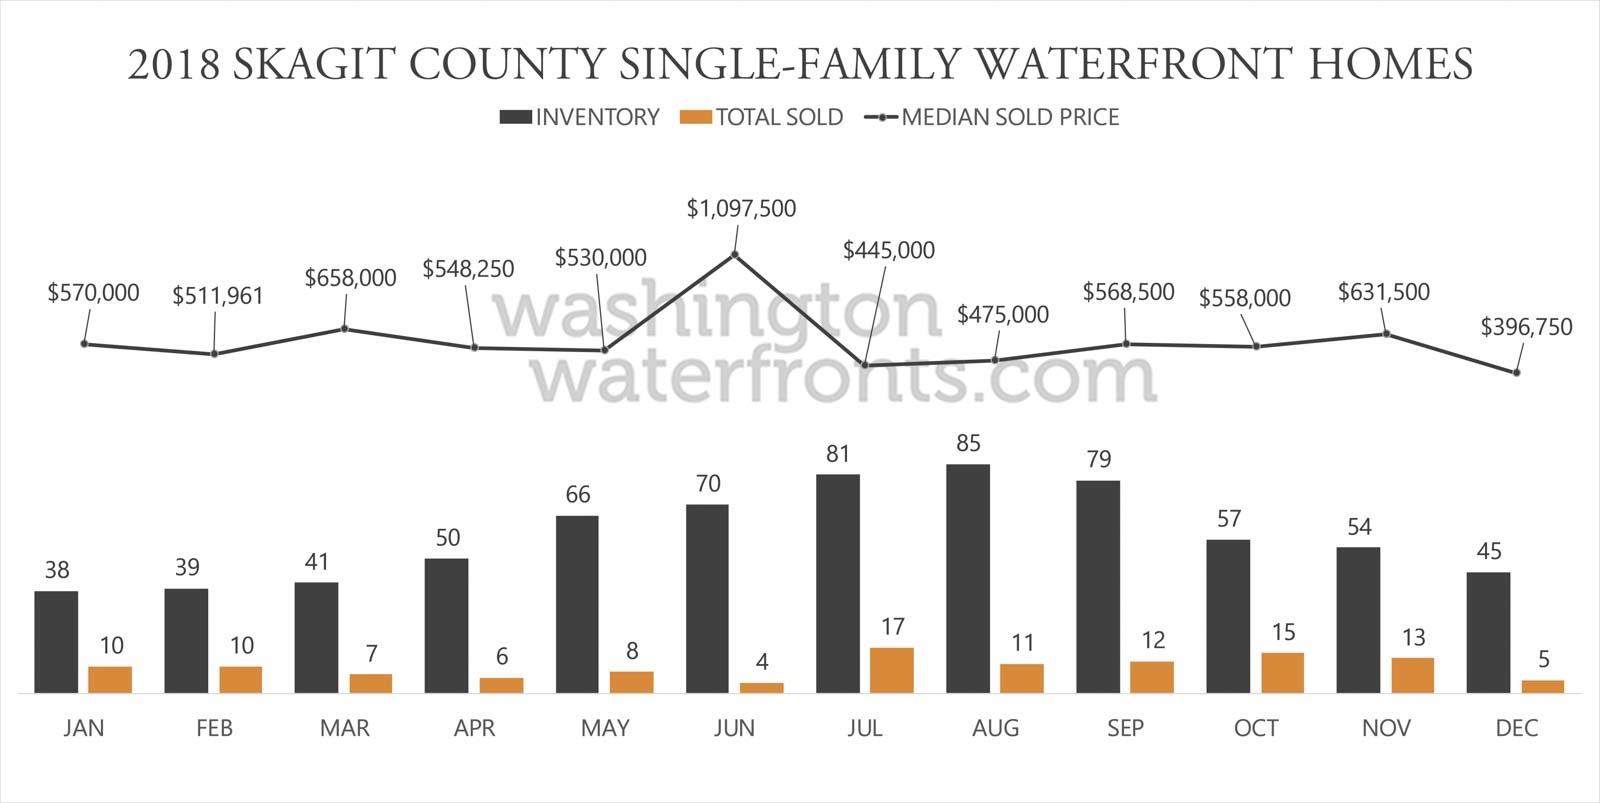 Skagit County Waterfront Inventory